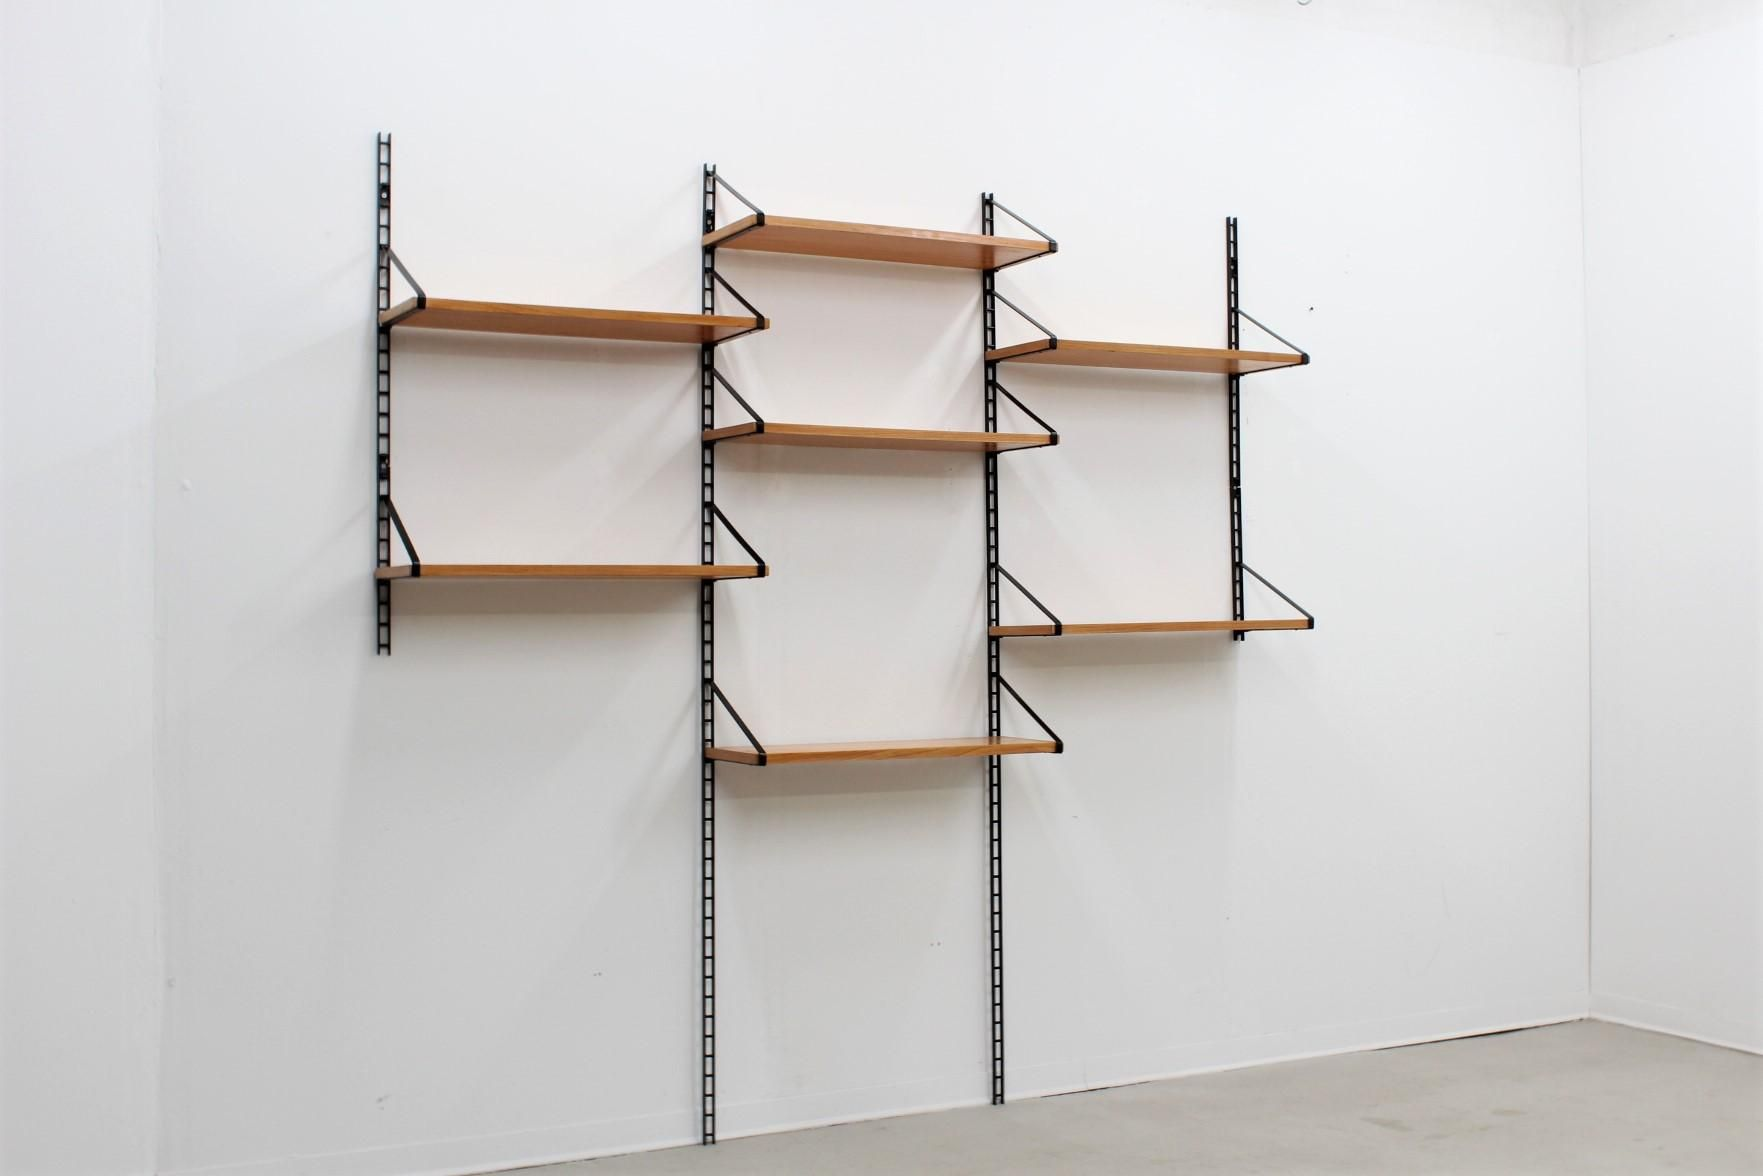 Italian Modular Wall Shelves, 1950S For Sale At Pamono